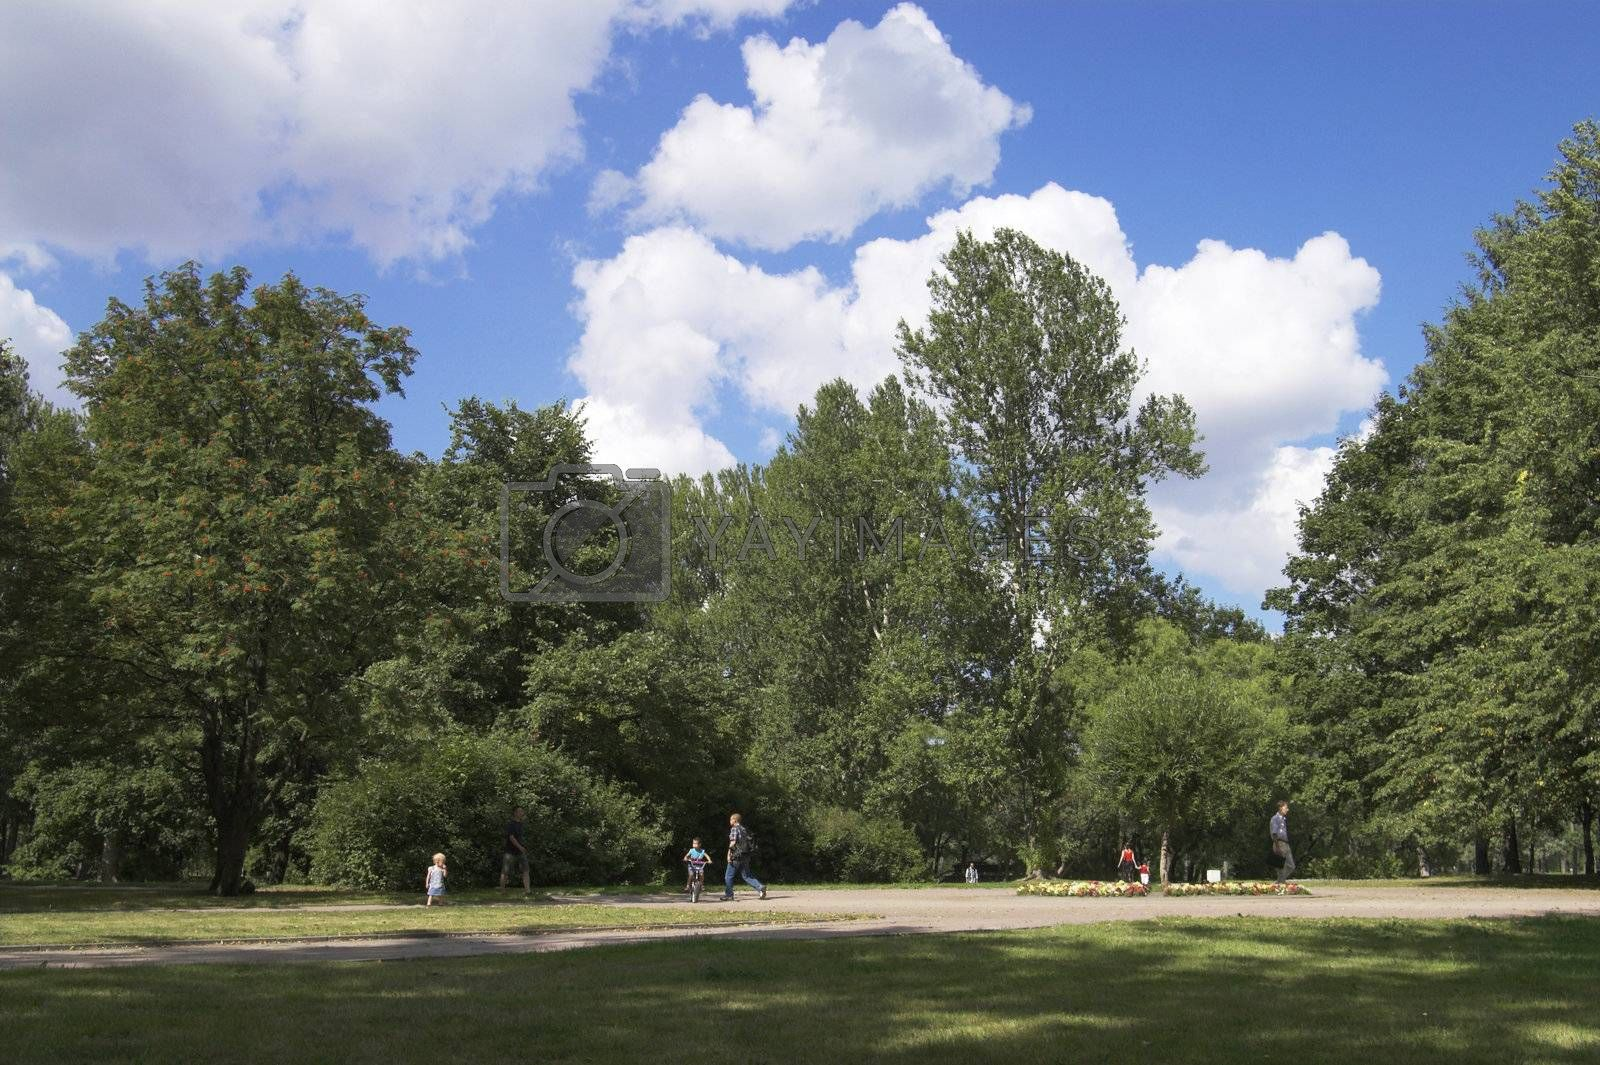 People, flowers, and trees in a summer park.